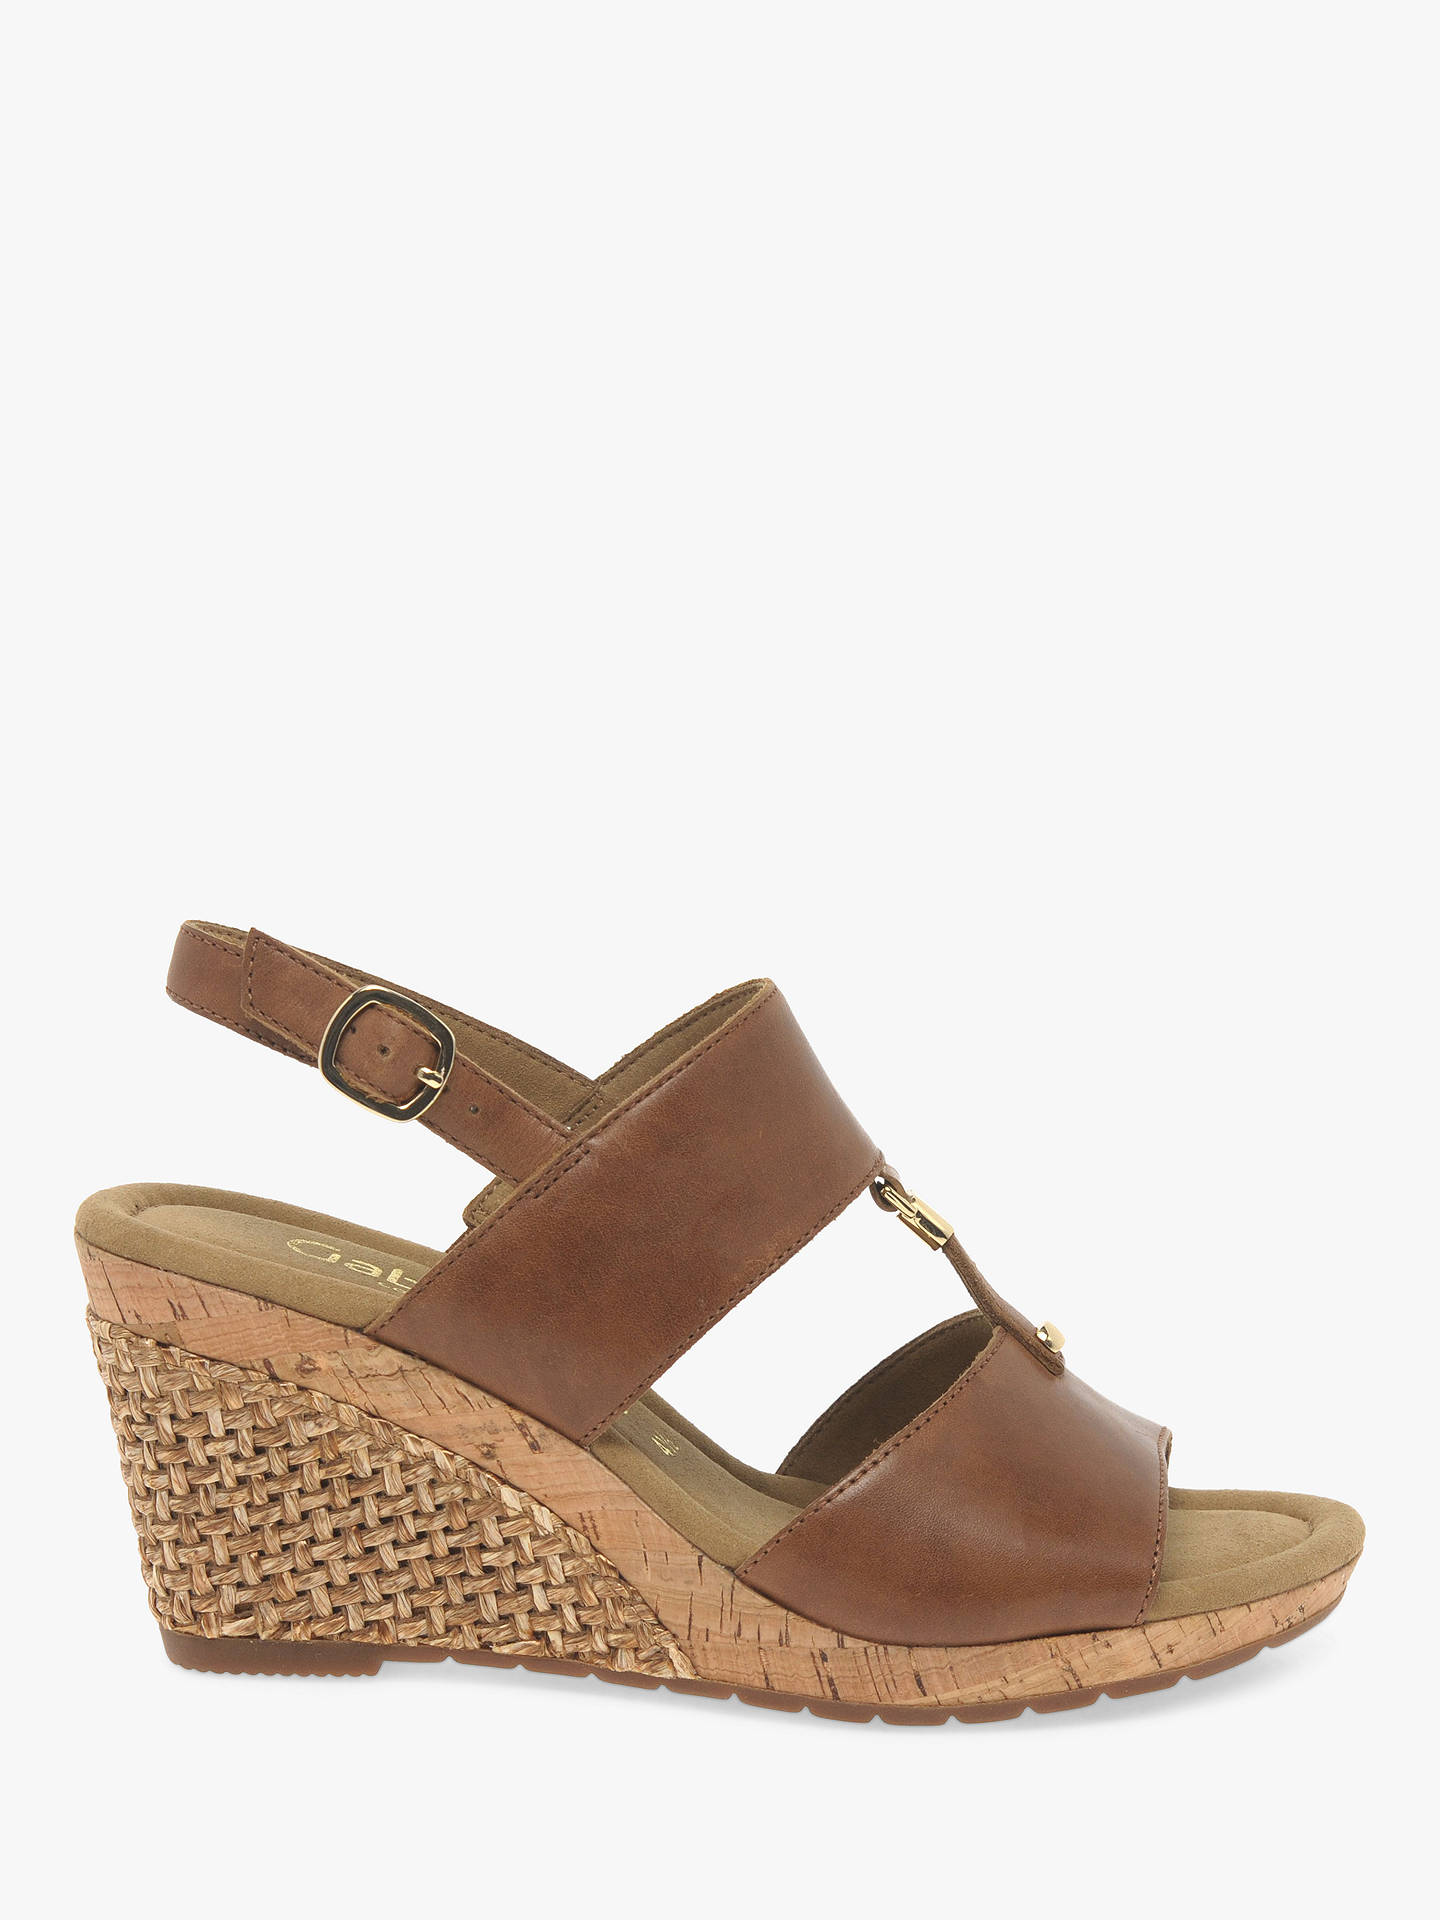 Gabor Keira Wide Fit Wedge Sandals, Peanut Leather John Lewis